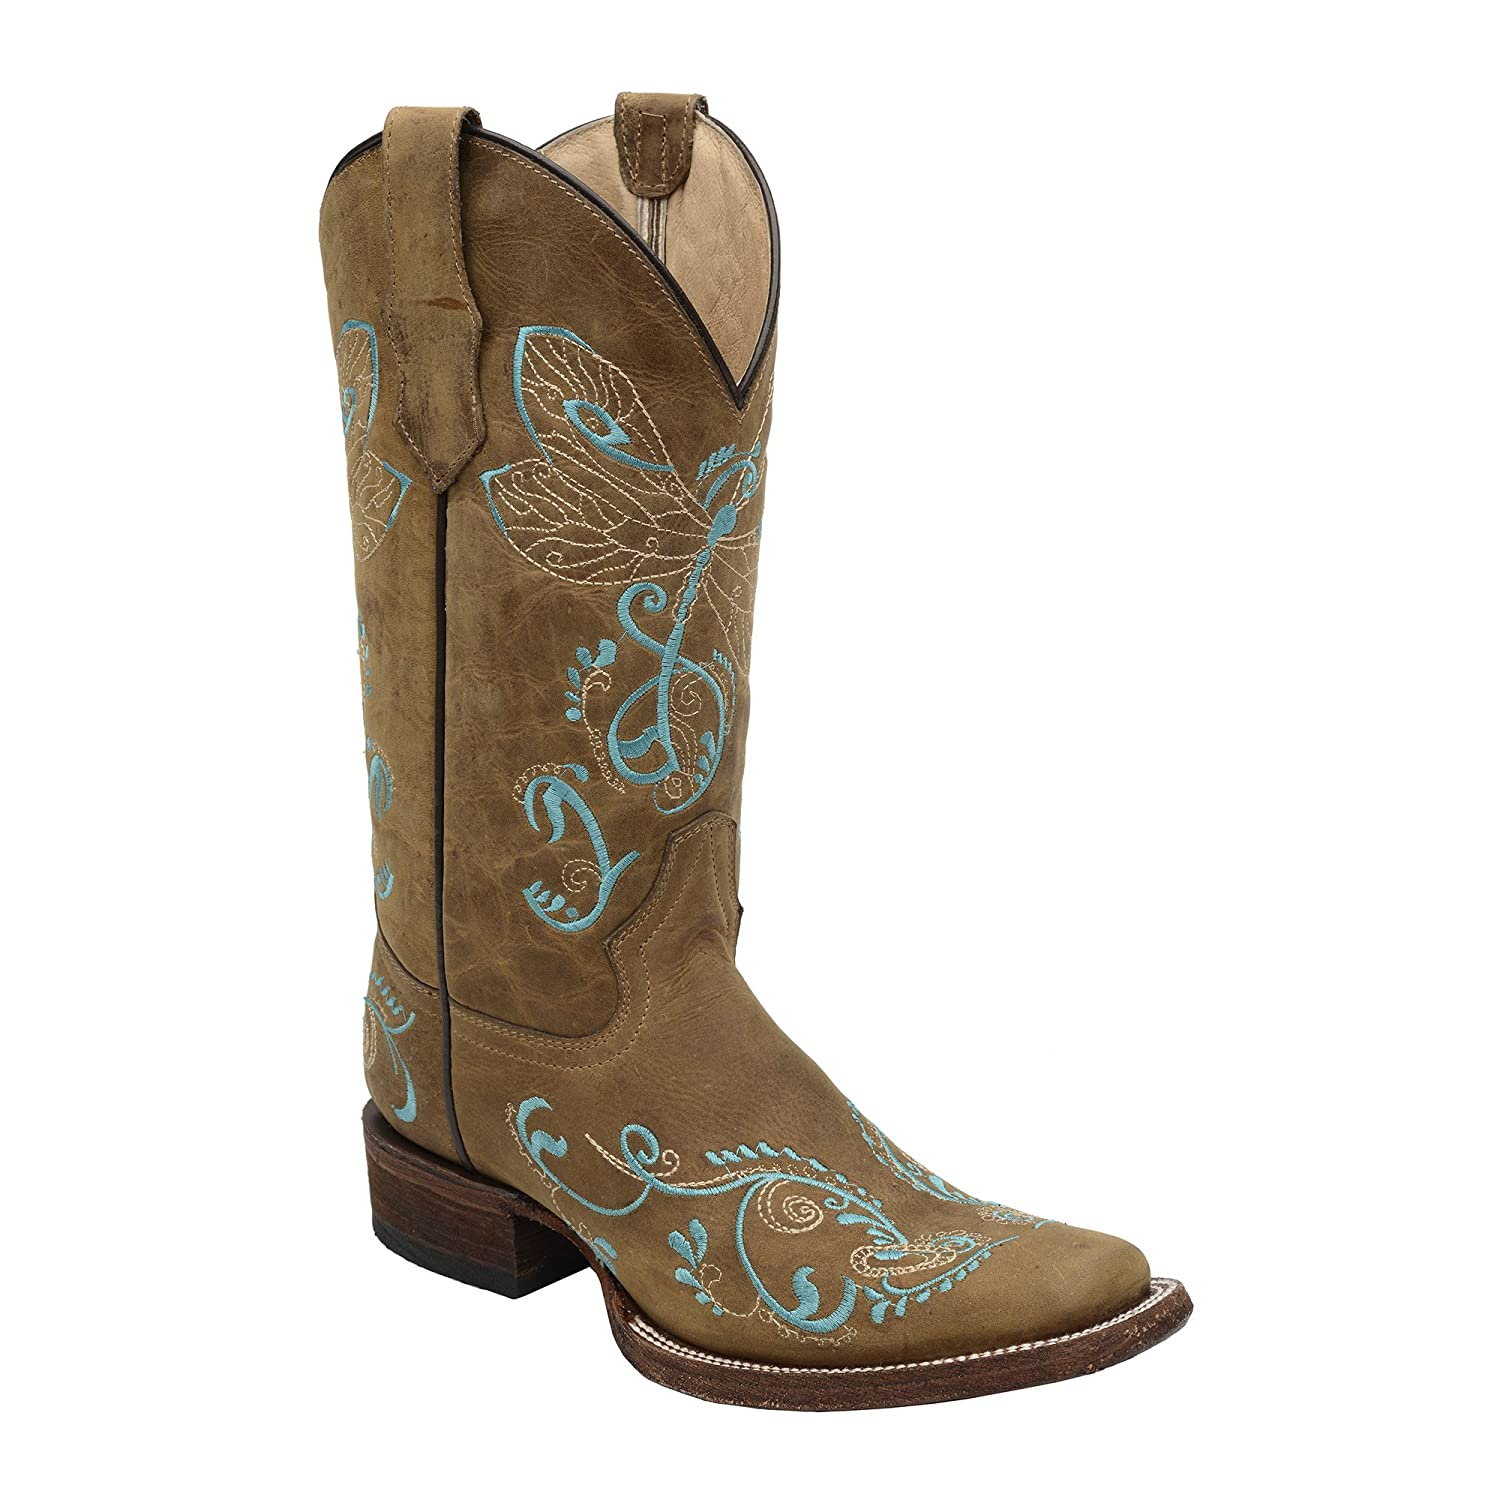 Corral Women's Dragonfly Embroidery Square Toe Western Boots B00XM33ZO0 10 B(M) US|Brown